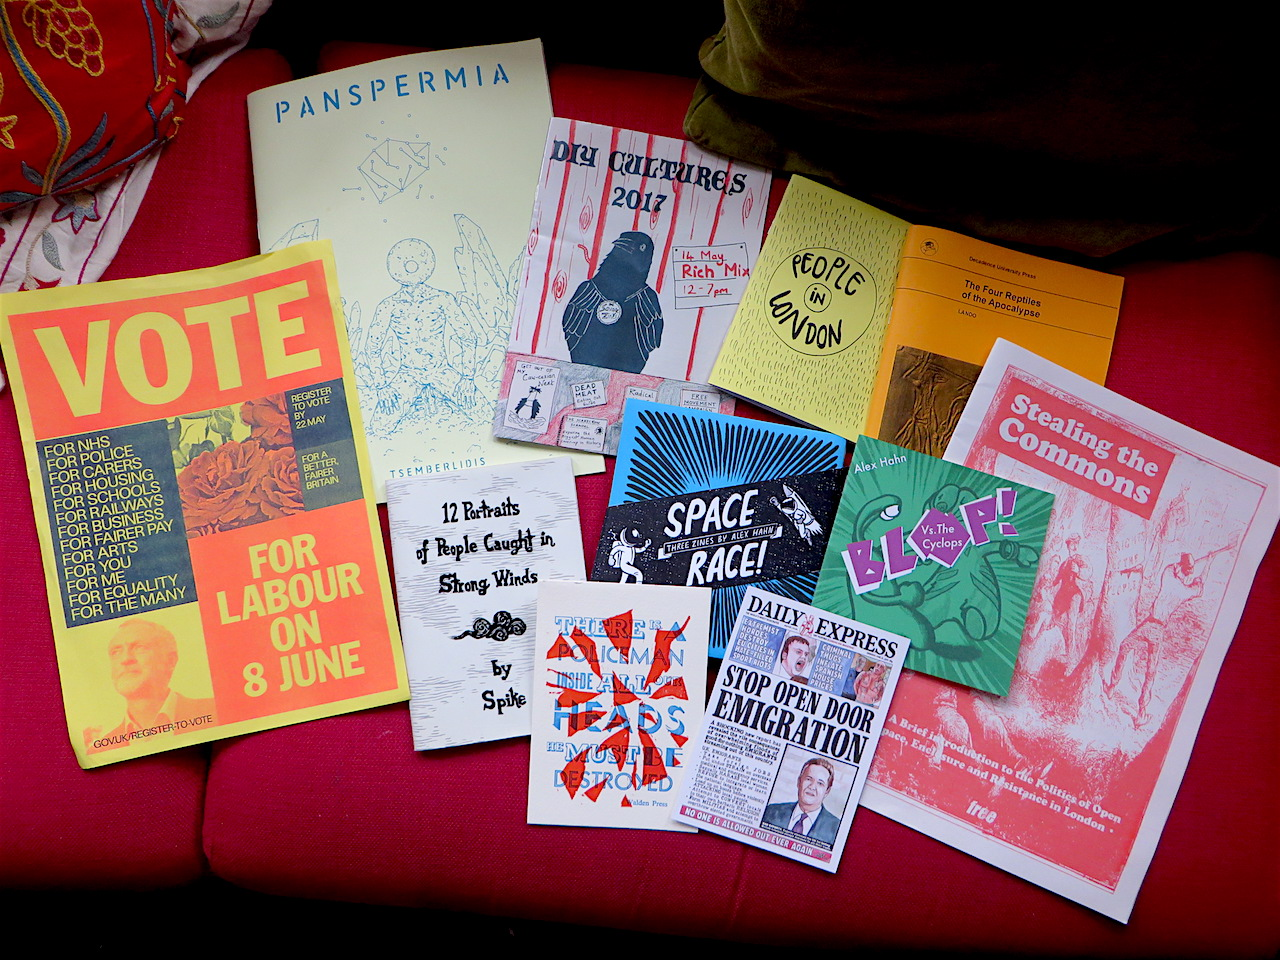 Zines and posters from DIY Cultures at Rich Mix in Shoreditch, London on May 14, 2017 (Photo: Andy Worthington).